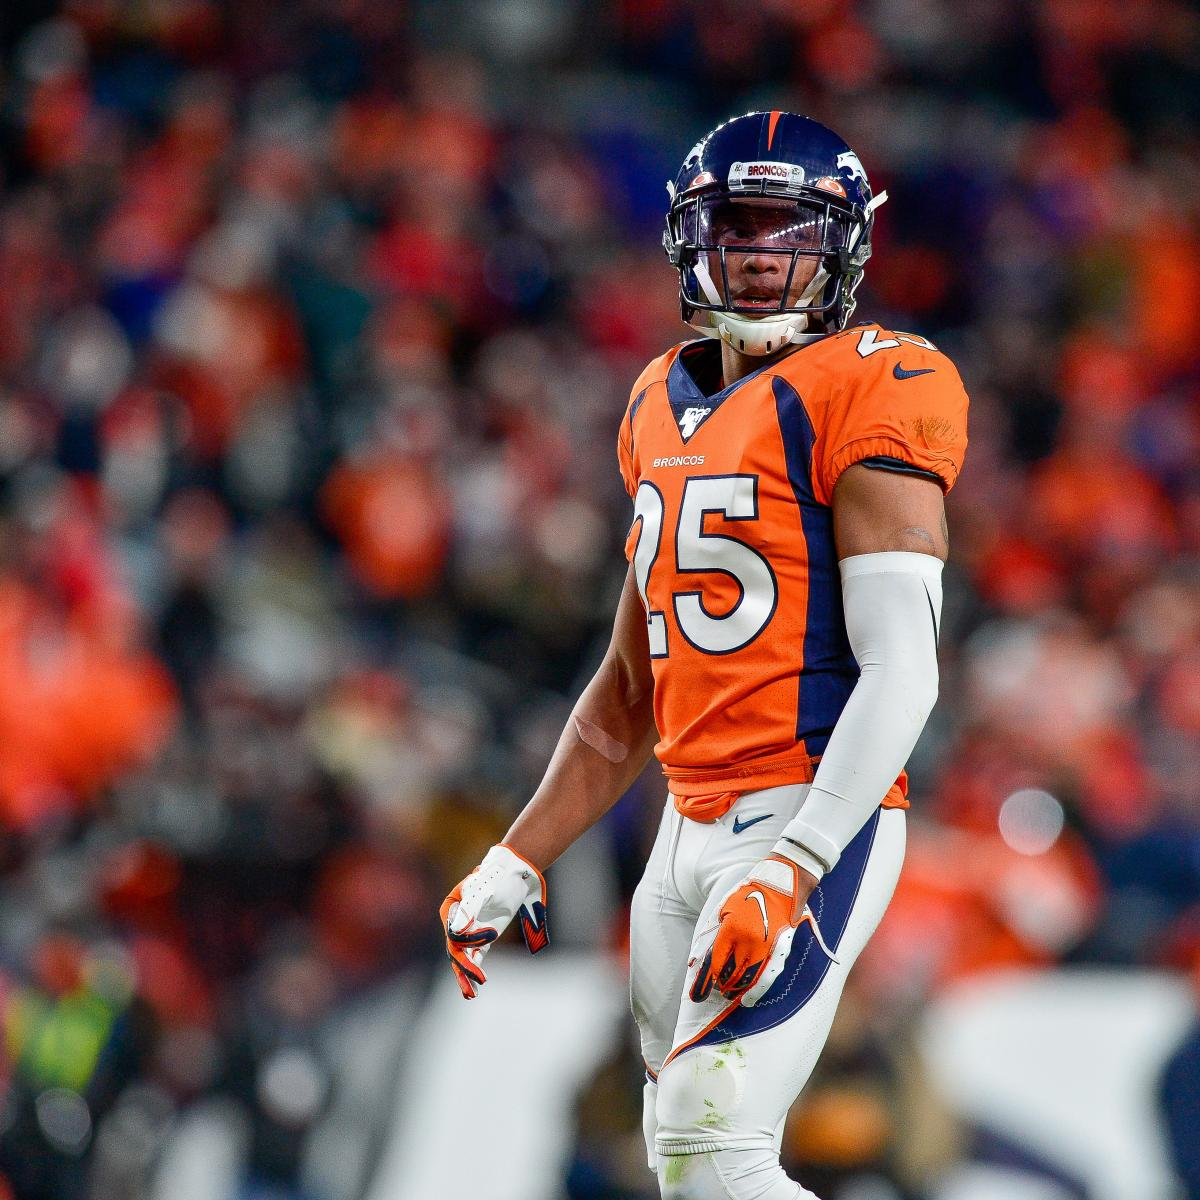 Chris Harris Jr. Says He Needs 15 More INT, 2 All-Pro Nods to Be Hall of Famer